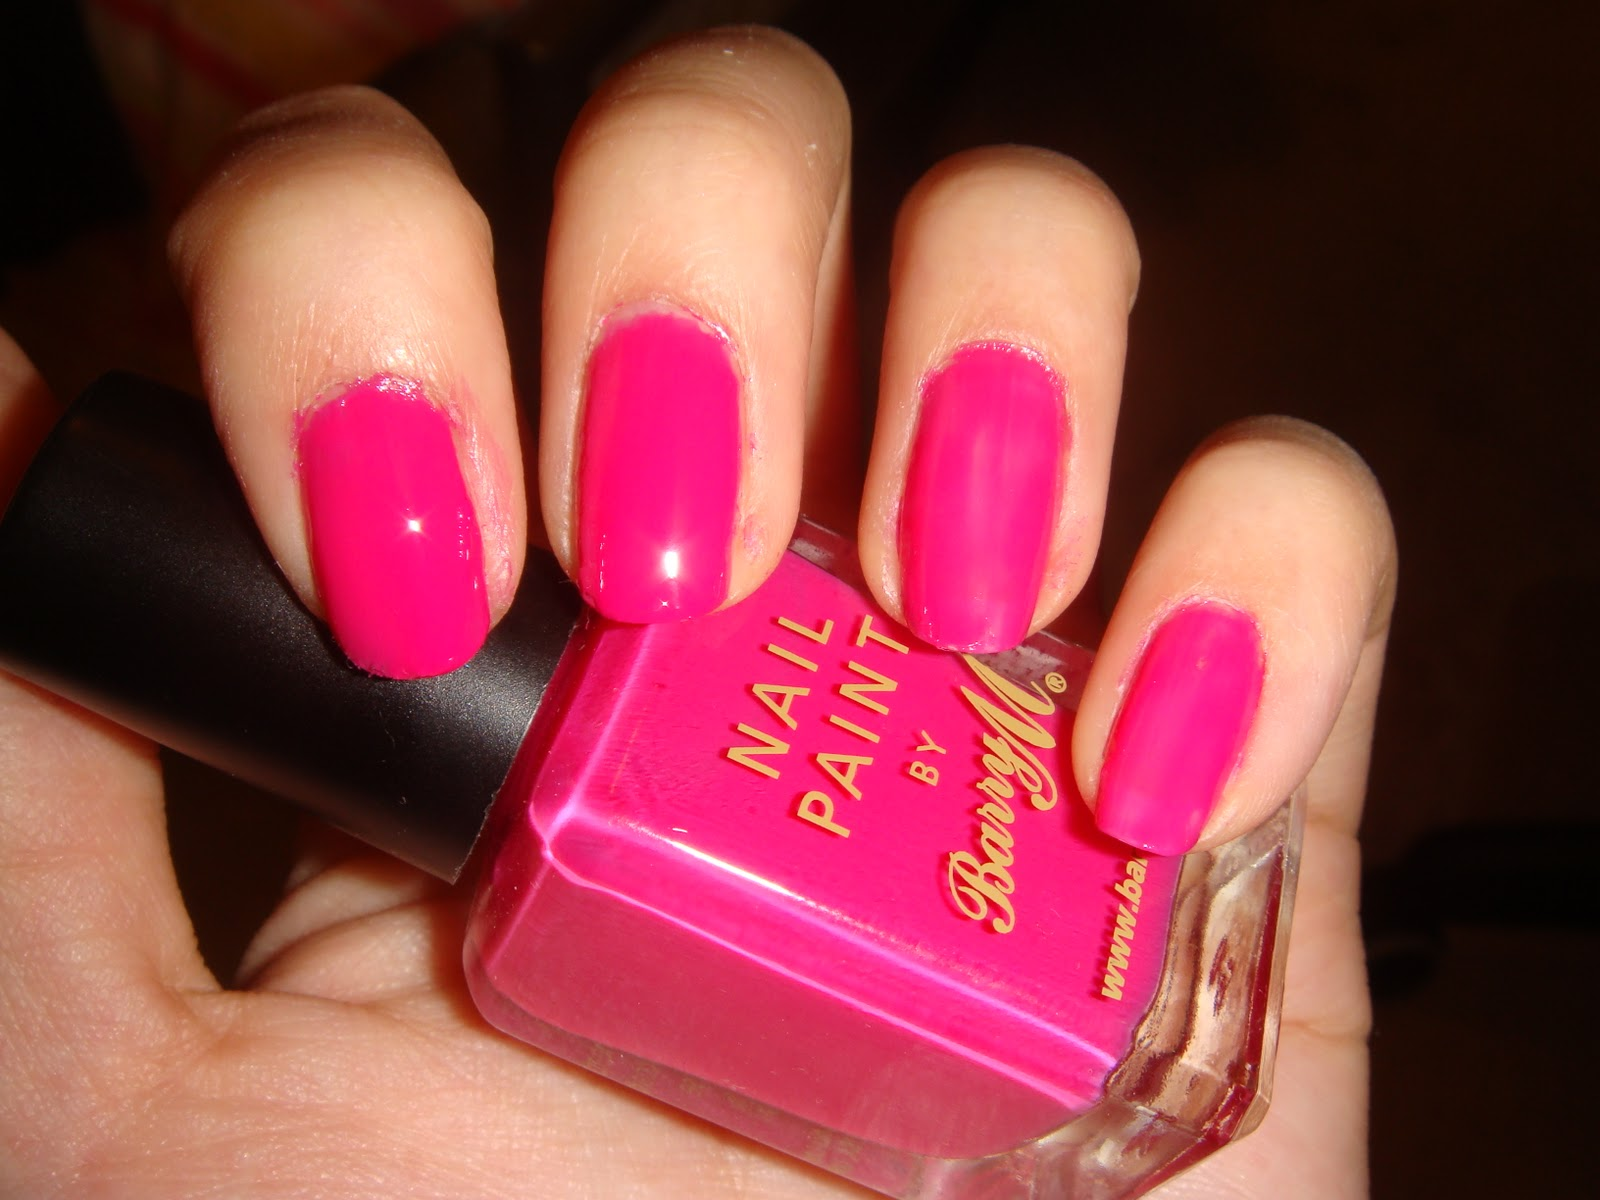 Hot Pink Nails Designs – images free download - trill wallpaper | Tumblr